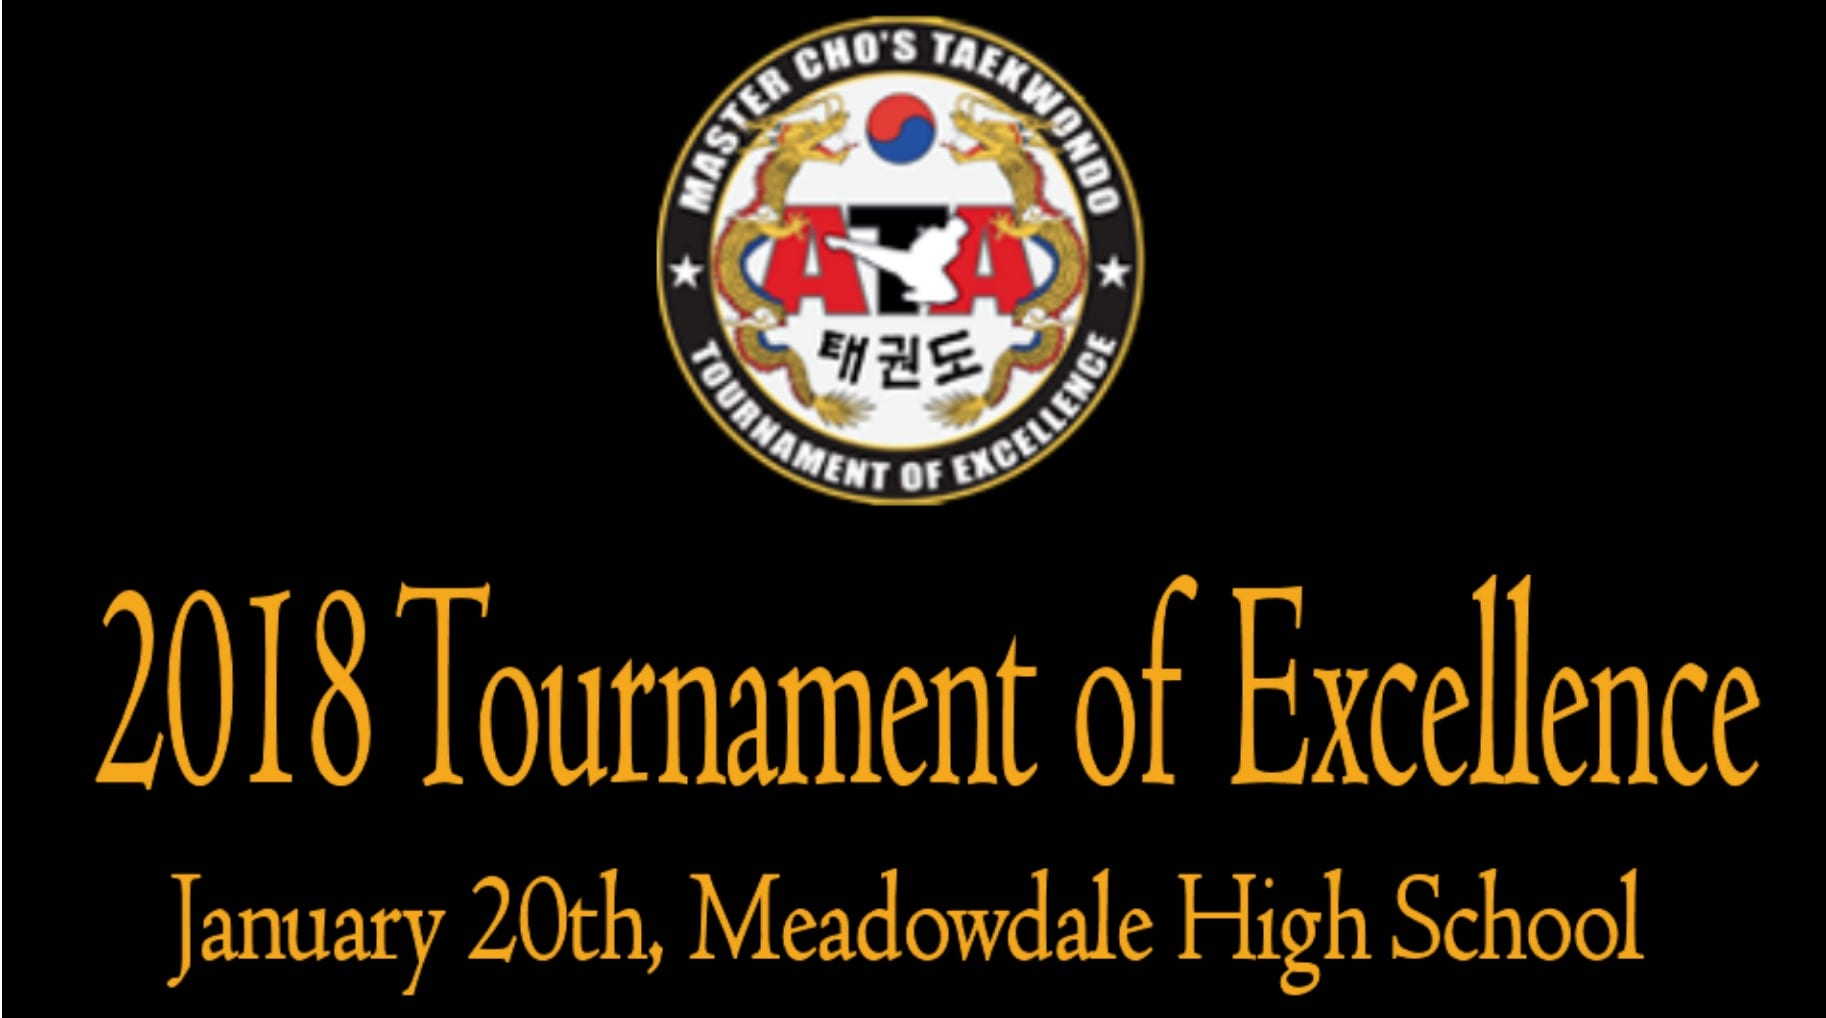 2018 Tournament of Excellence